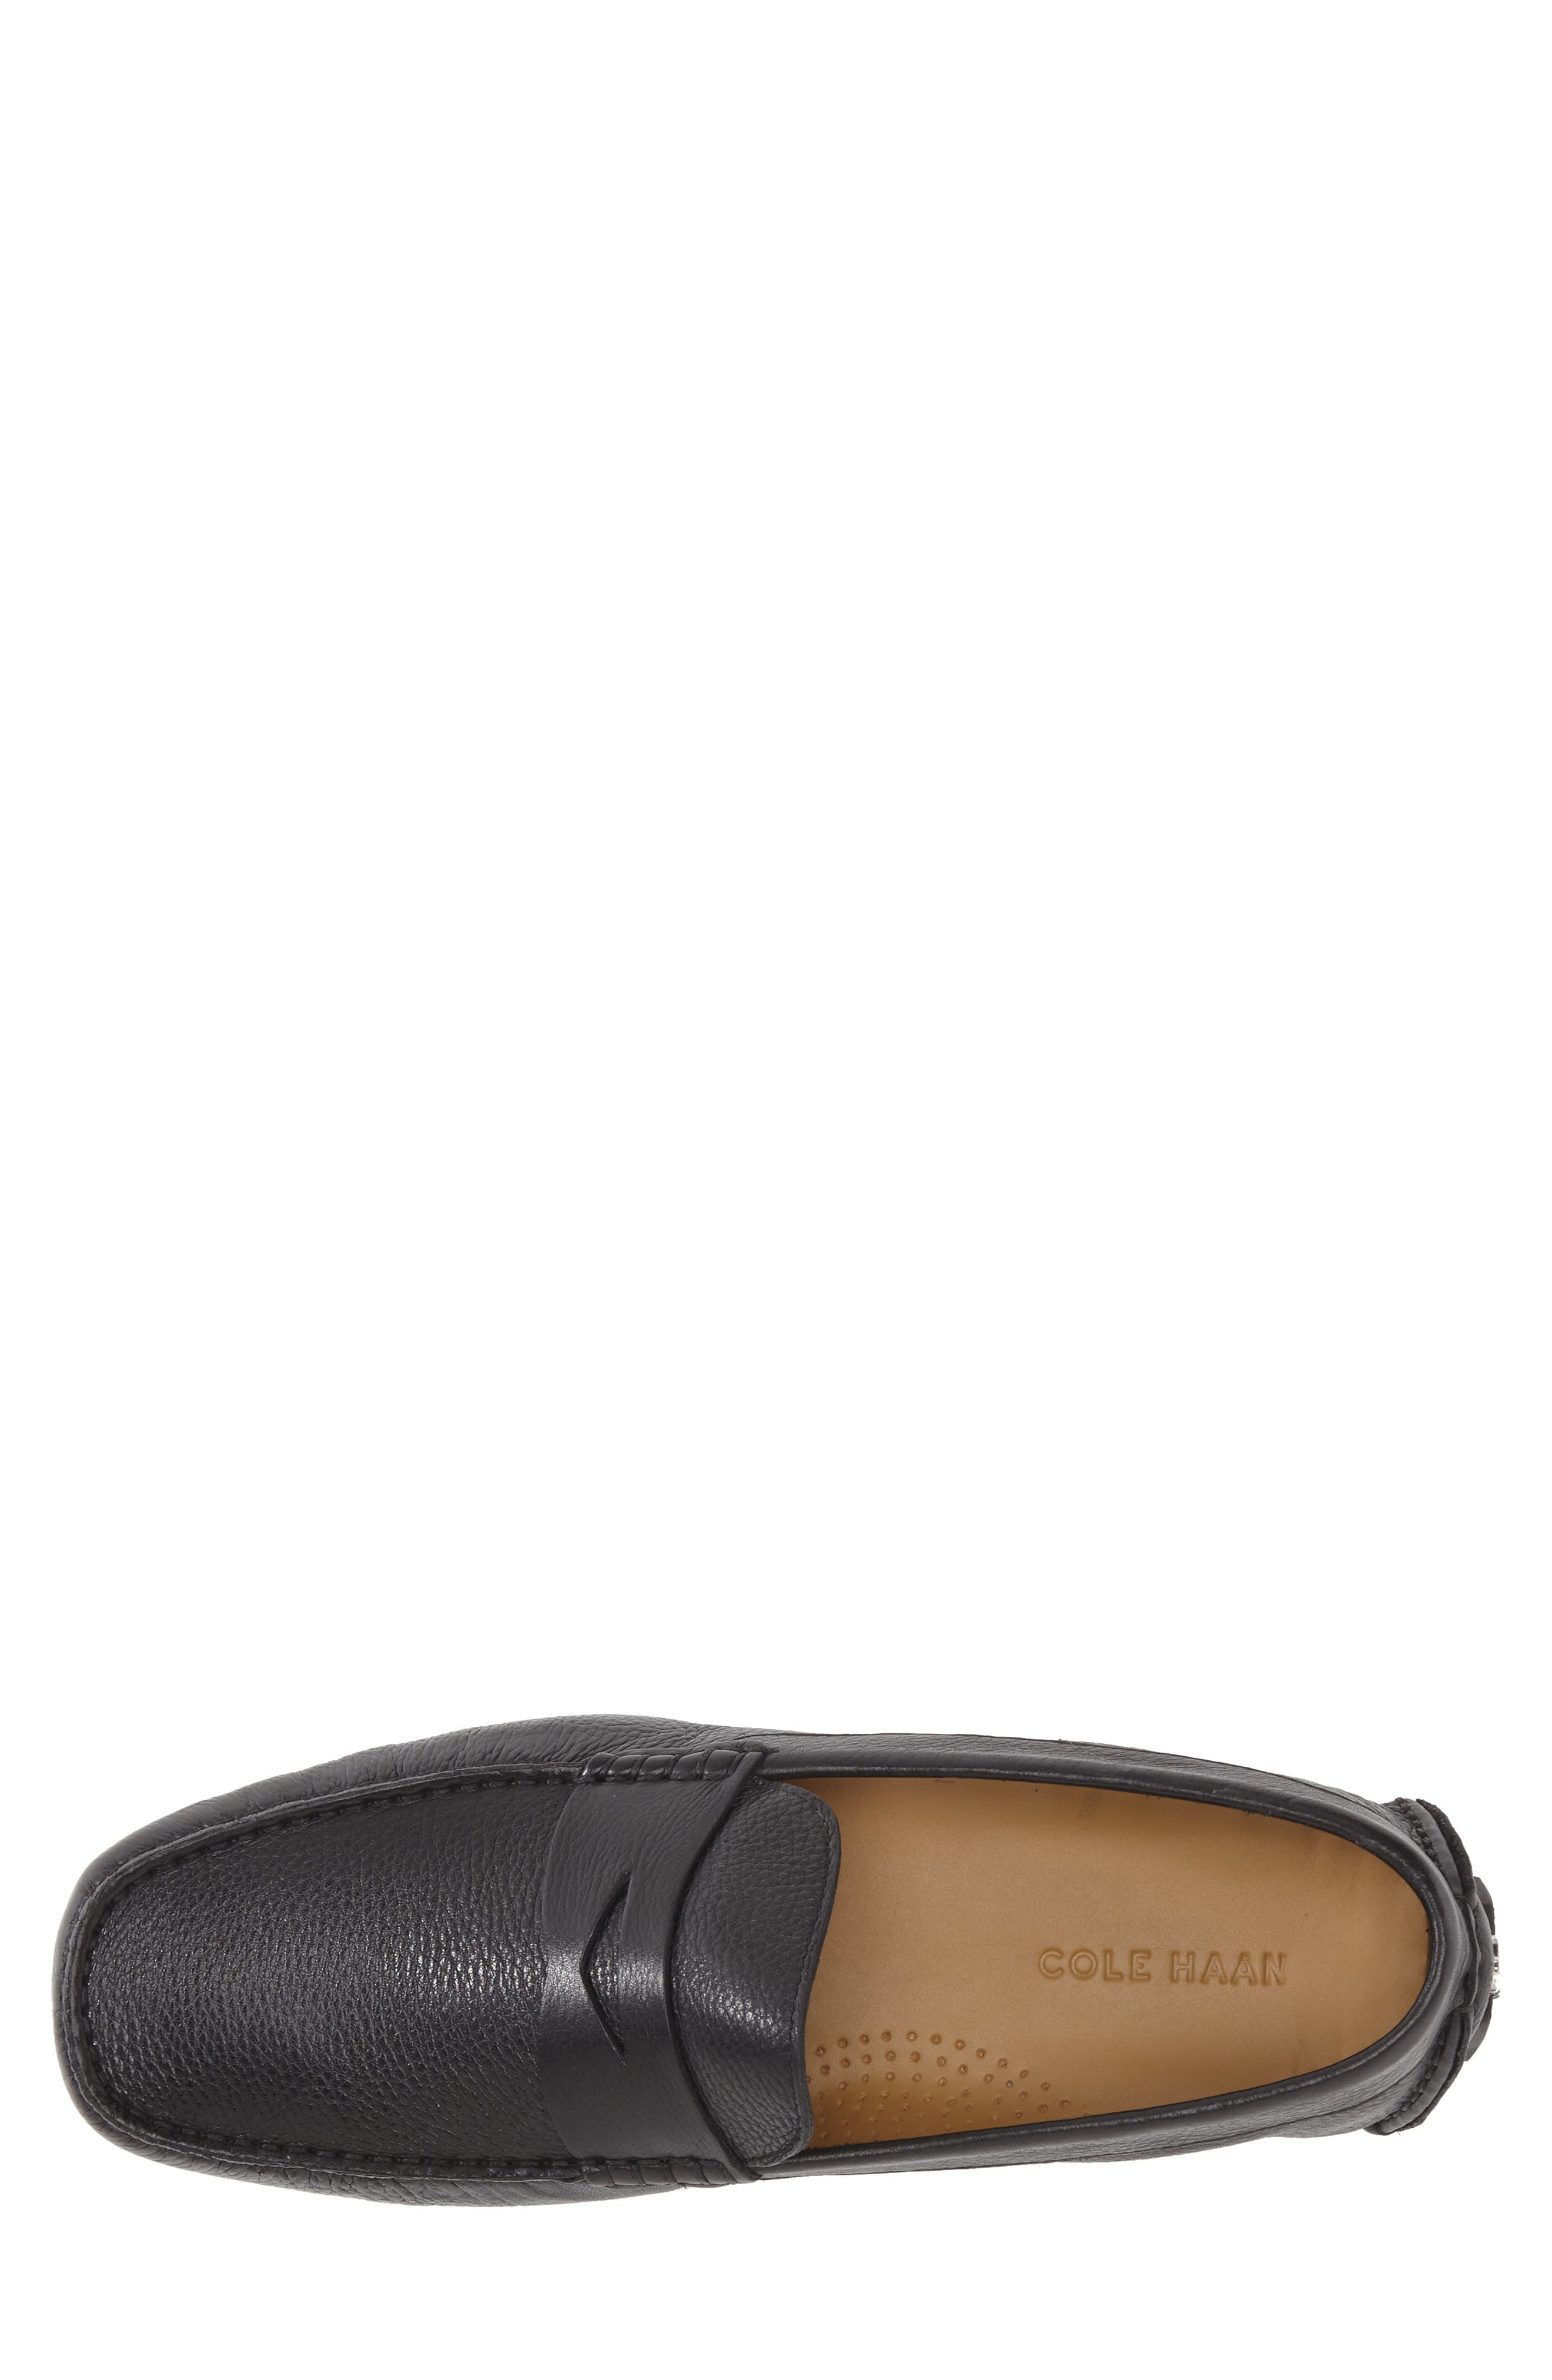 COLE HAAN, 'Howland' Penny Loafer, Alternate thumbnail 7, color, BLACK TUMBLED